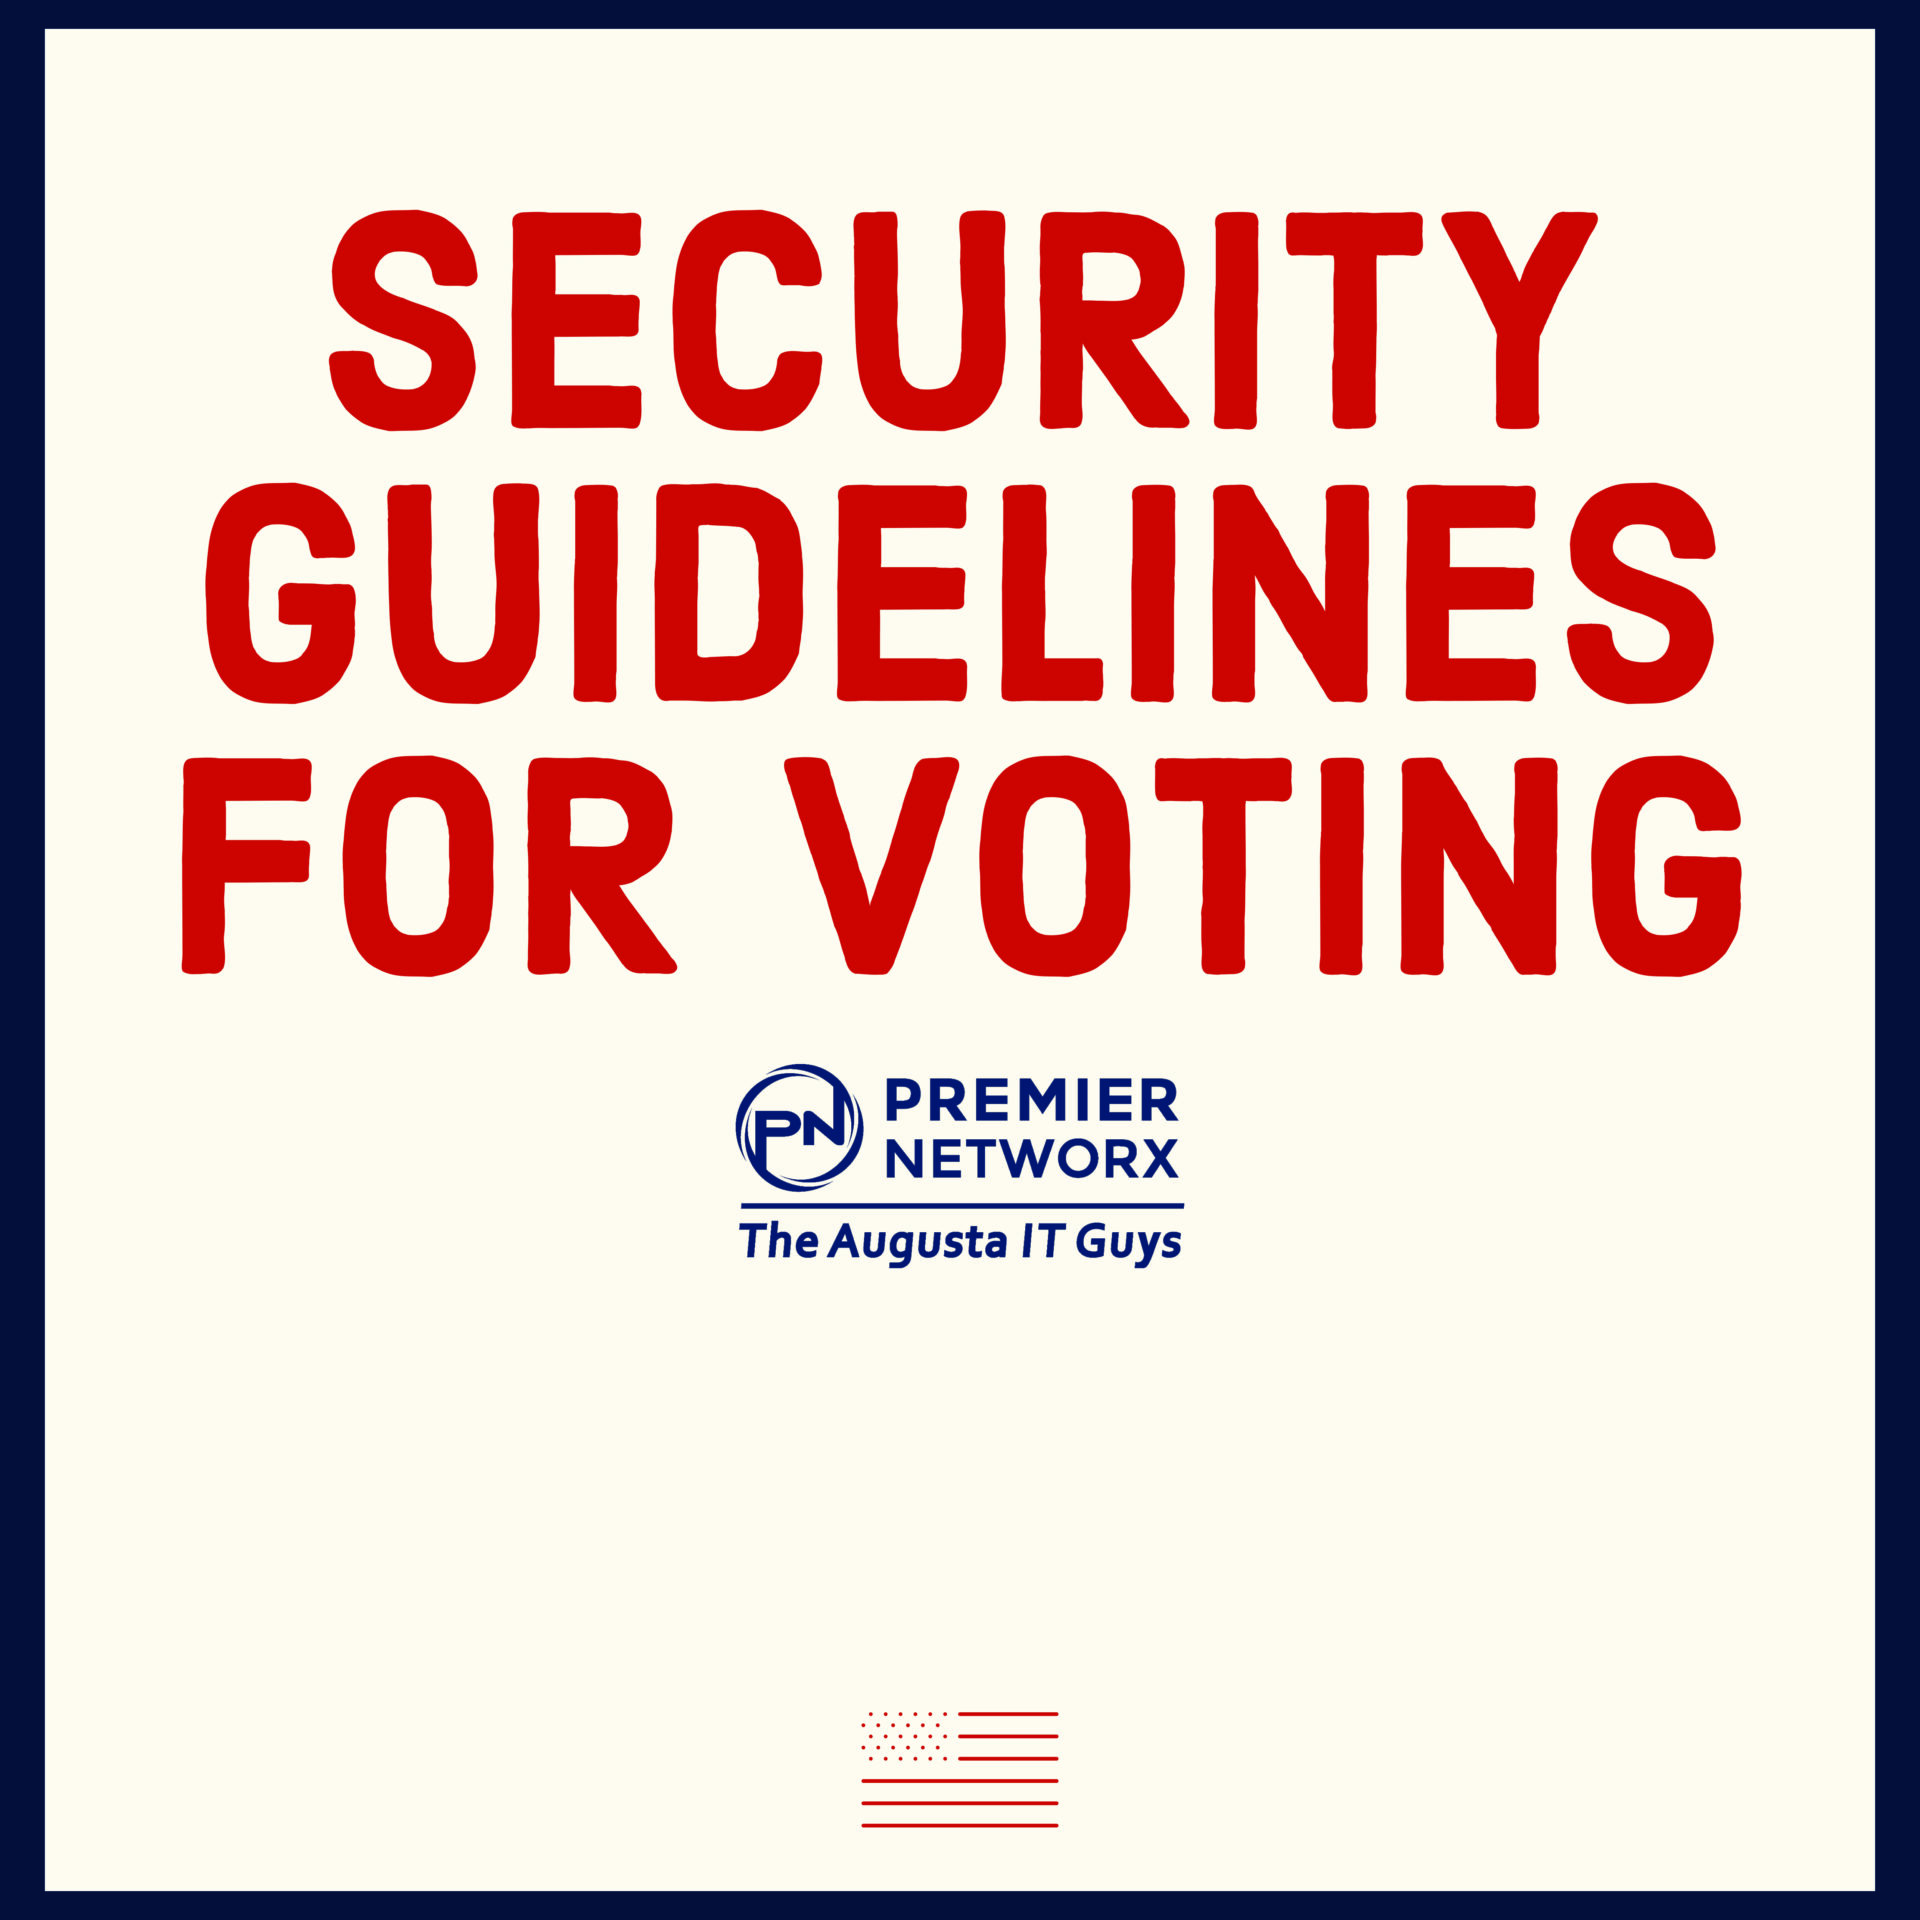 Premier Networx Voting Election Cybersecurity